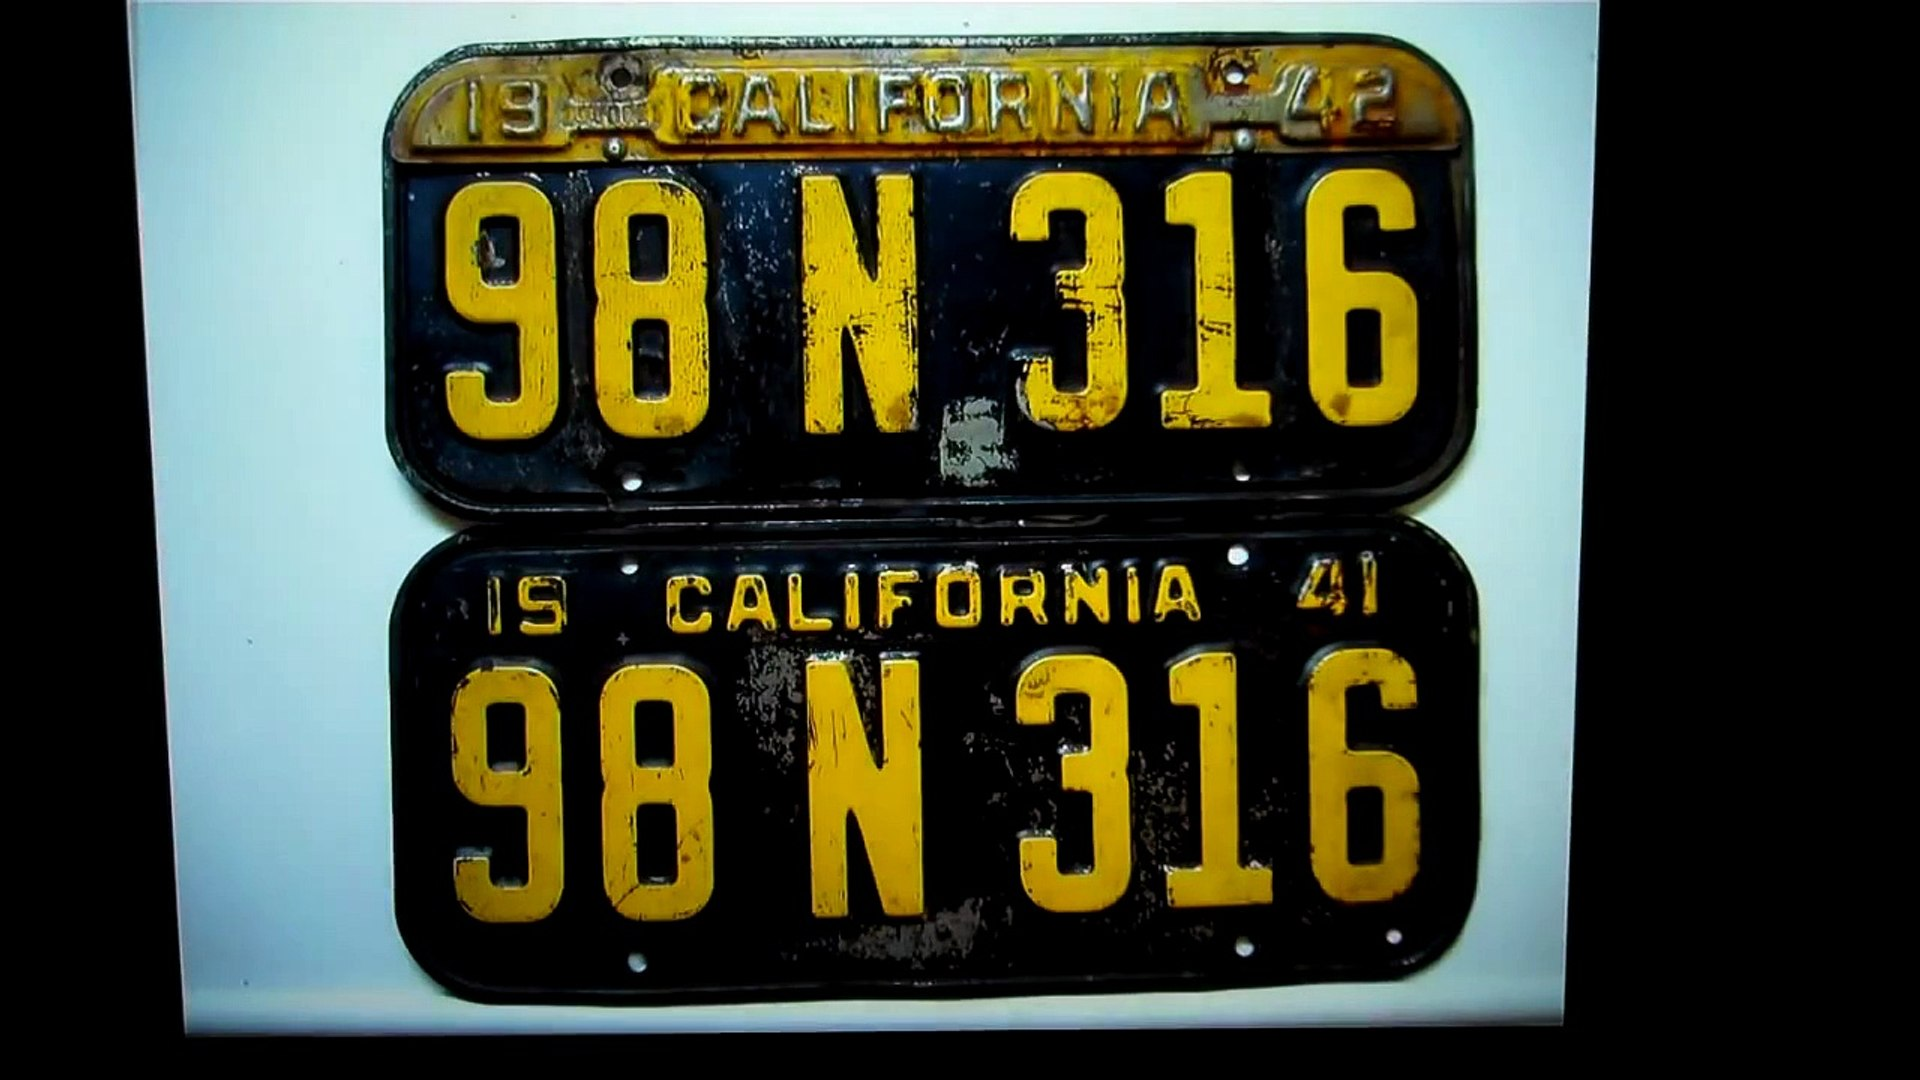 1963 California License Plate Restoration Chevy Mopar Ford Car Show Finish Your Plates